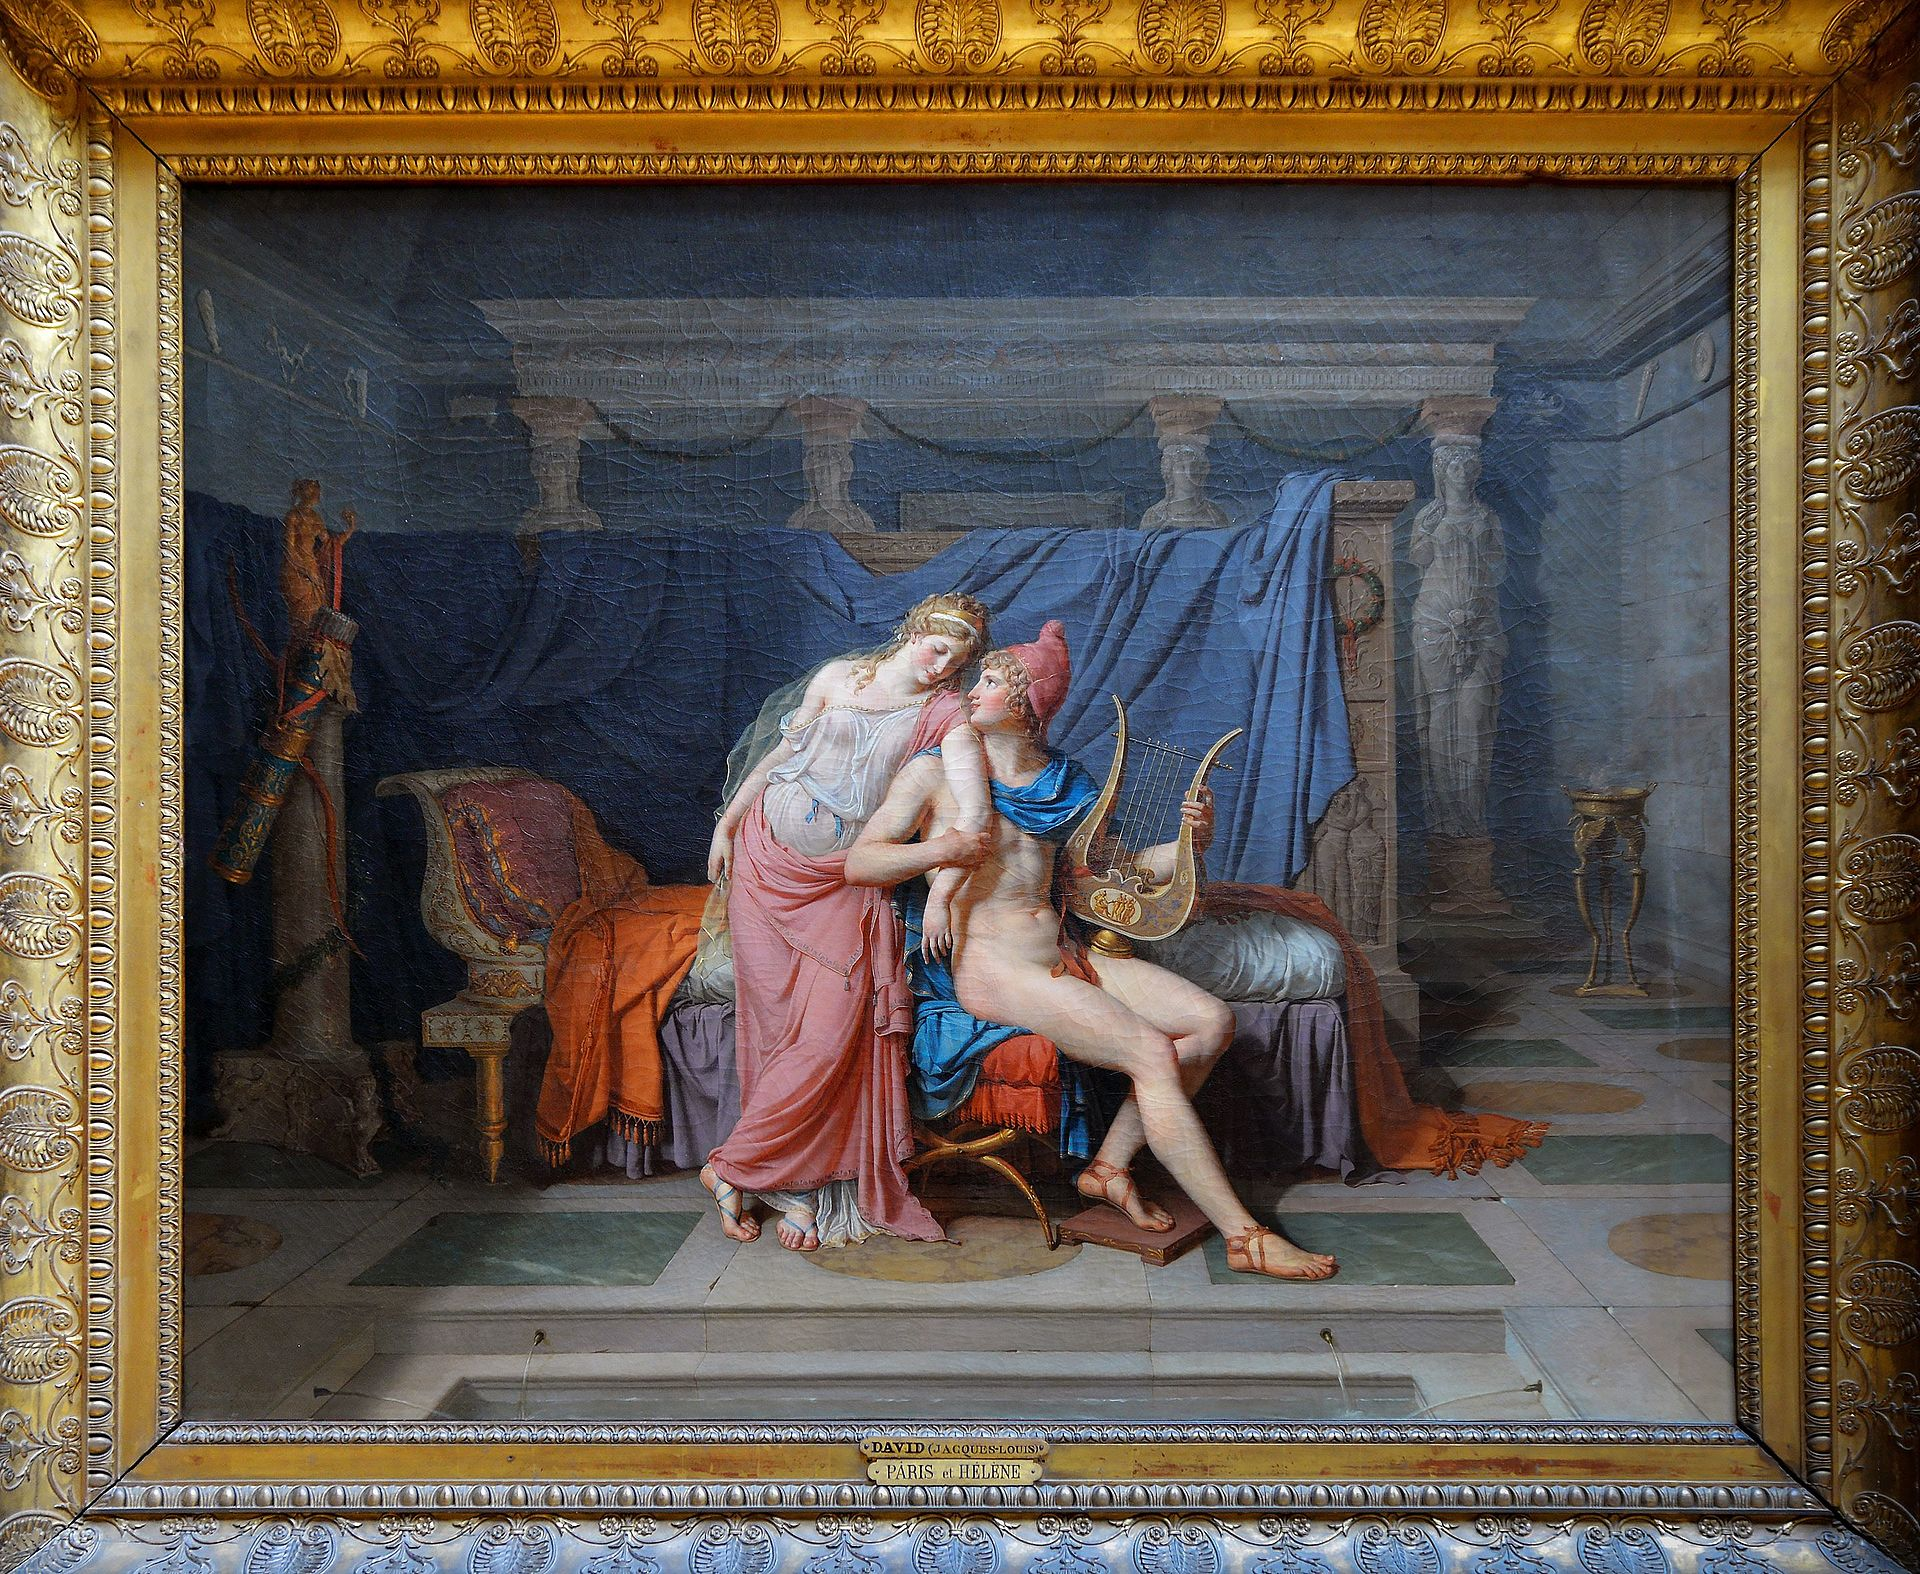 The_Love_of_Paris_and_Helen_by_Jacques-Louis_David